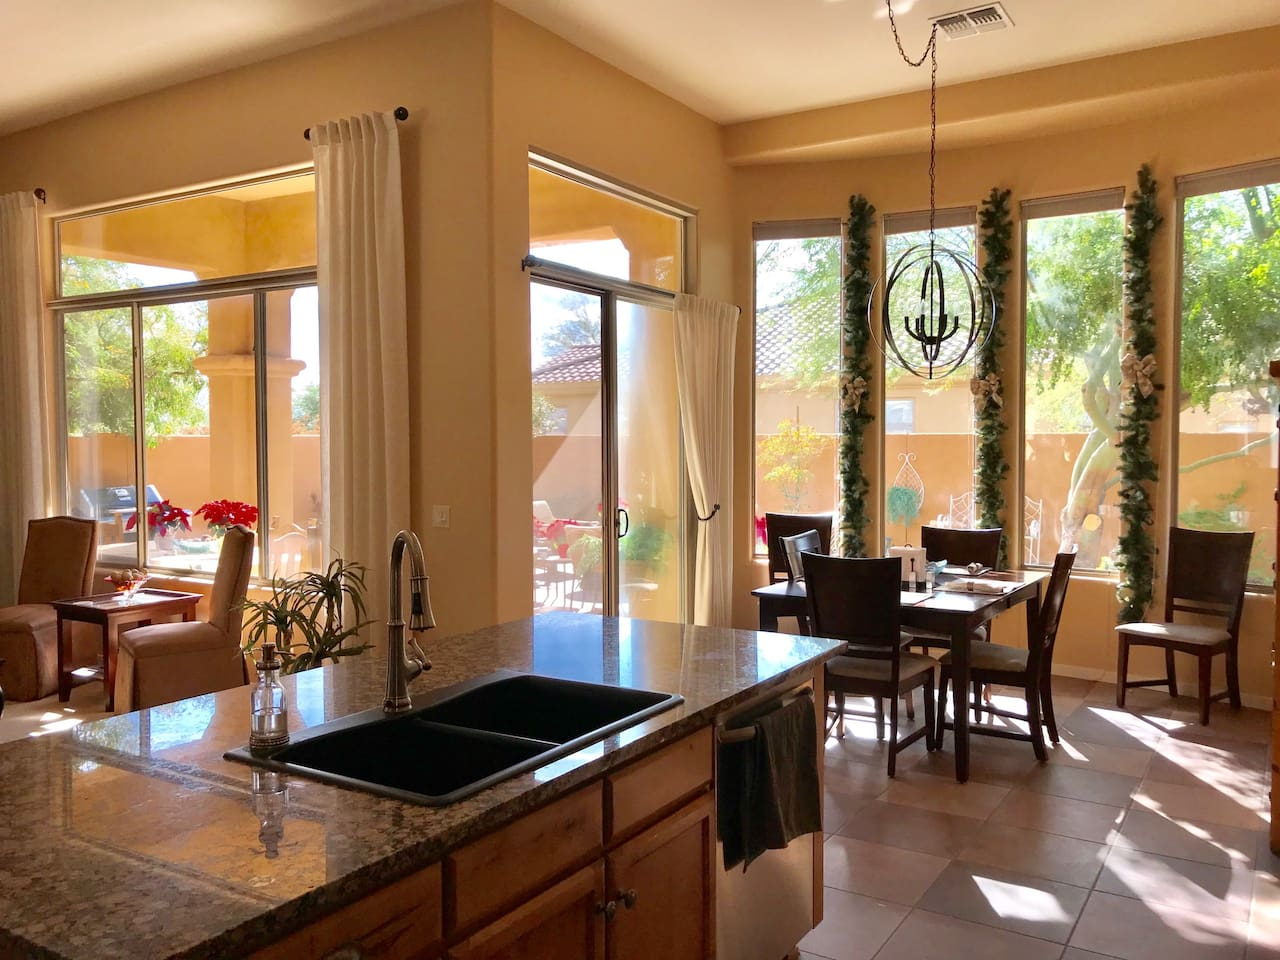 Open, bright family room and kitchen view to outdoor backyard living space. Kitchen table can be opened to seat 6 or 8 people with plenty of space around.